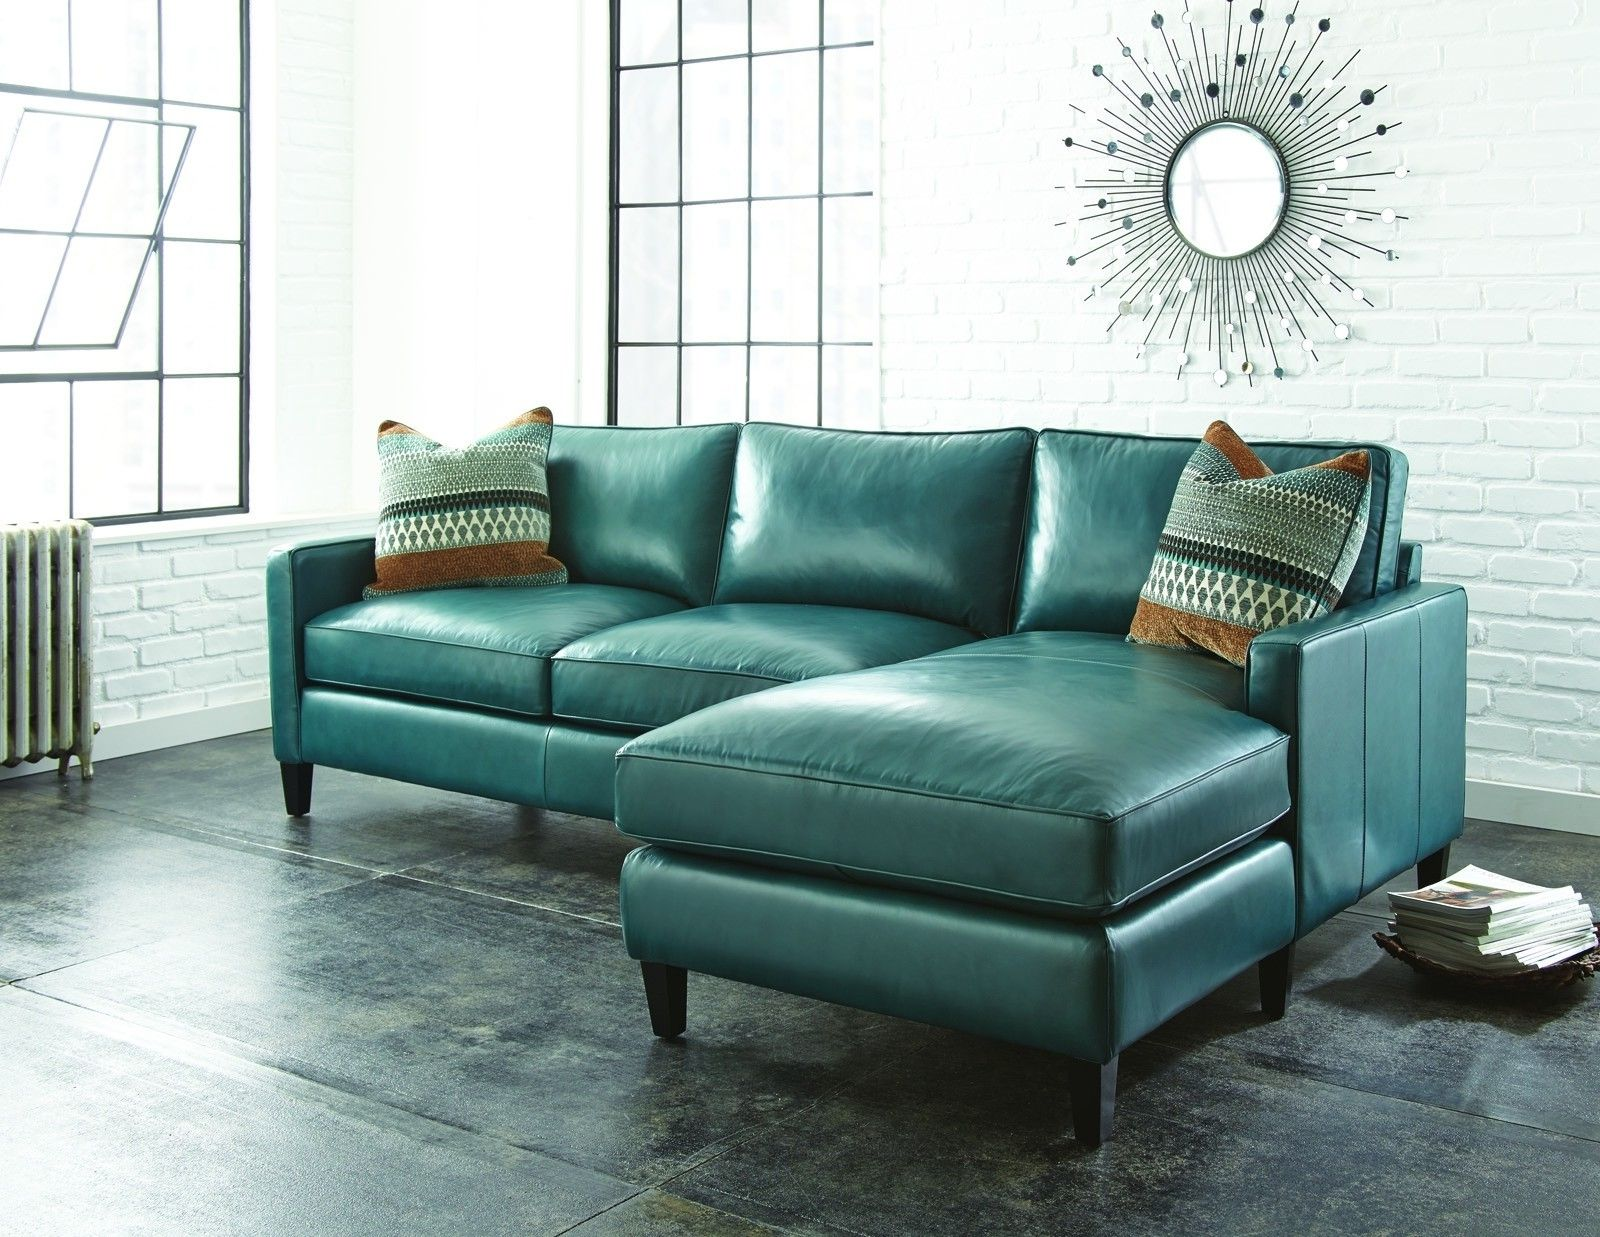 Best Teal Leather Sectional Sofa White Is The Most Elegant Of 400 x 300